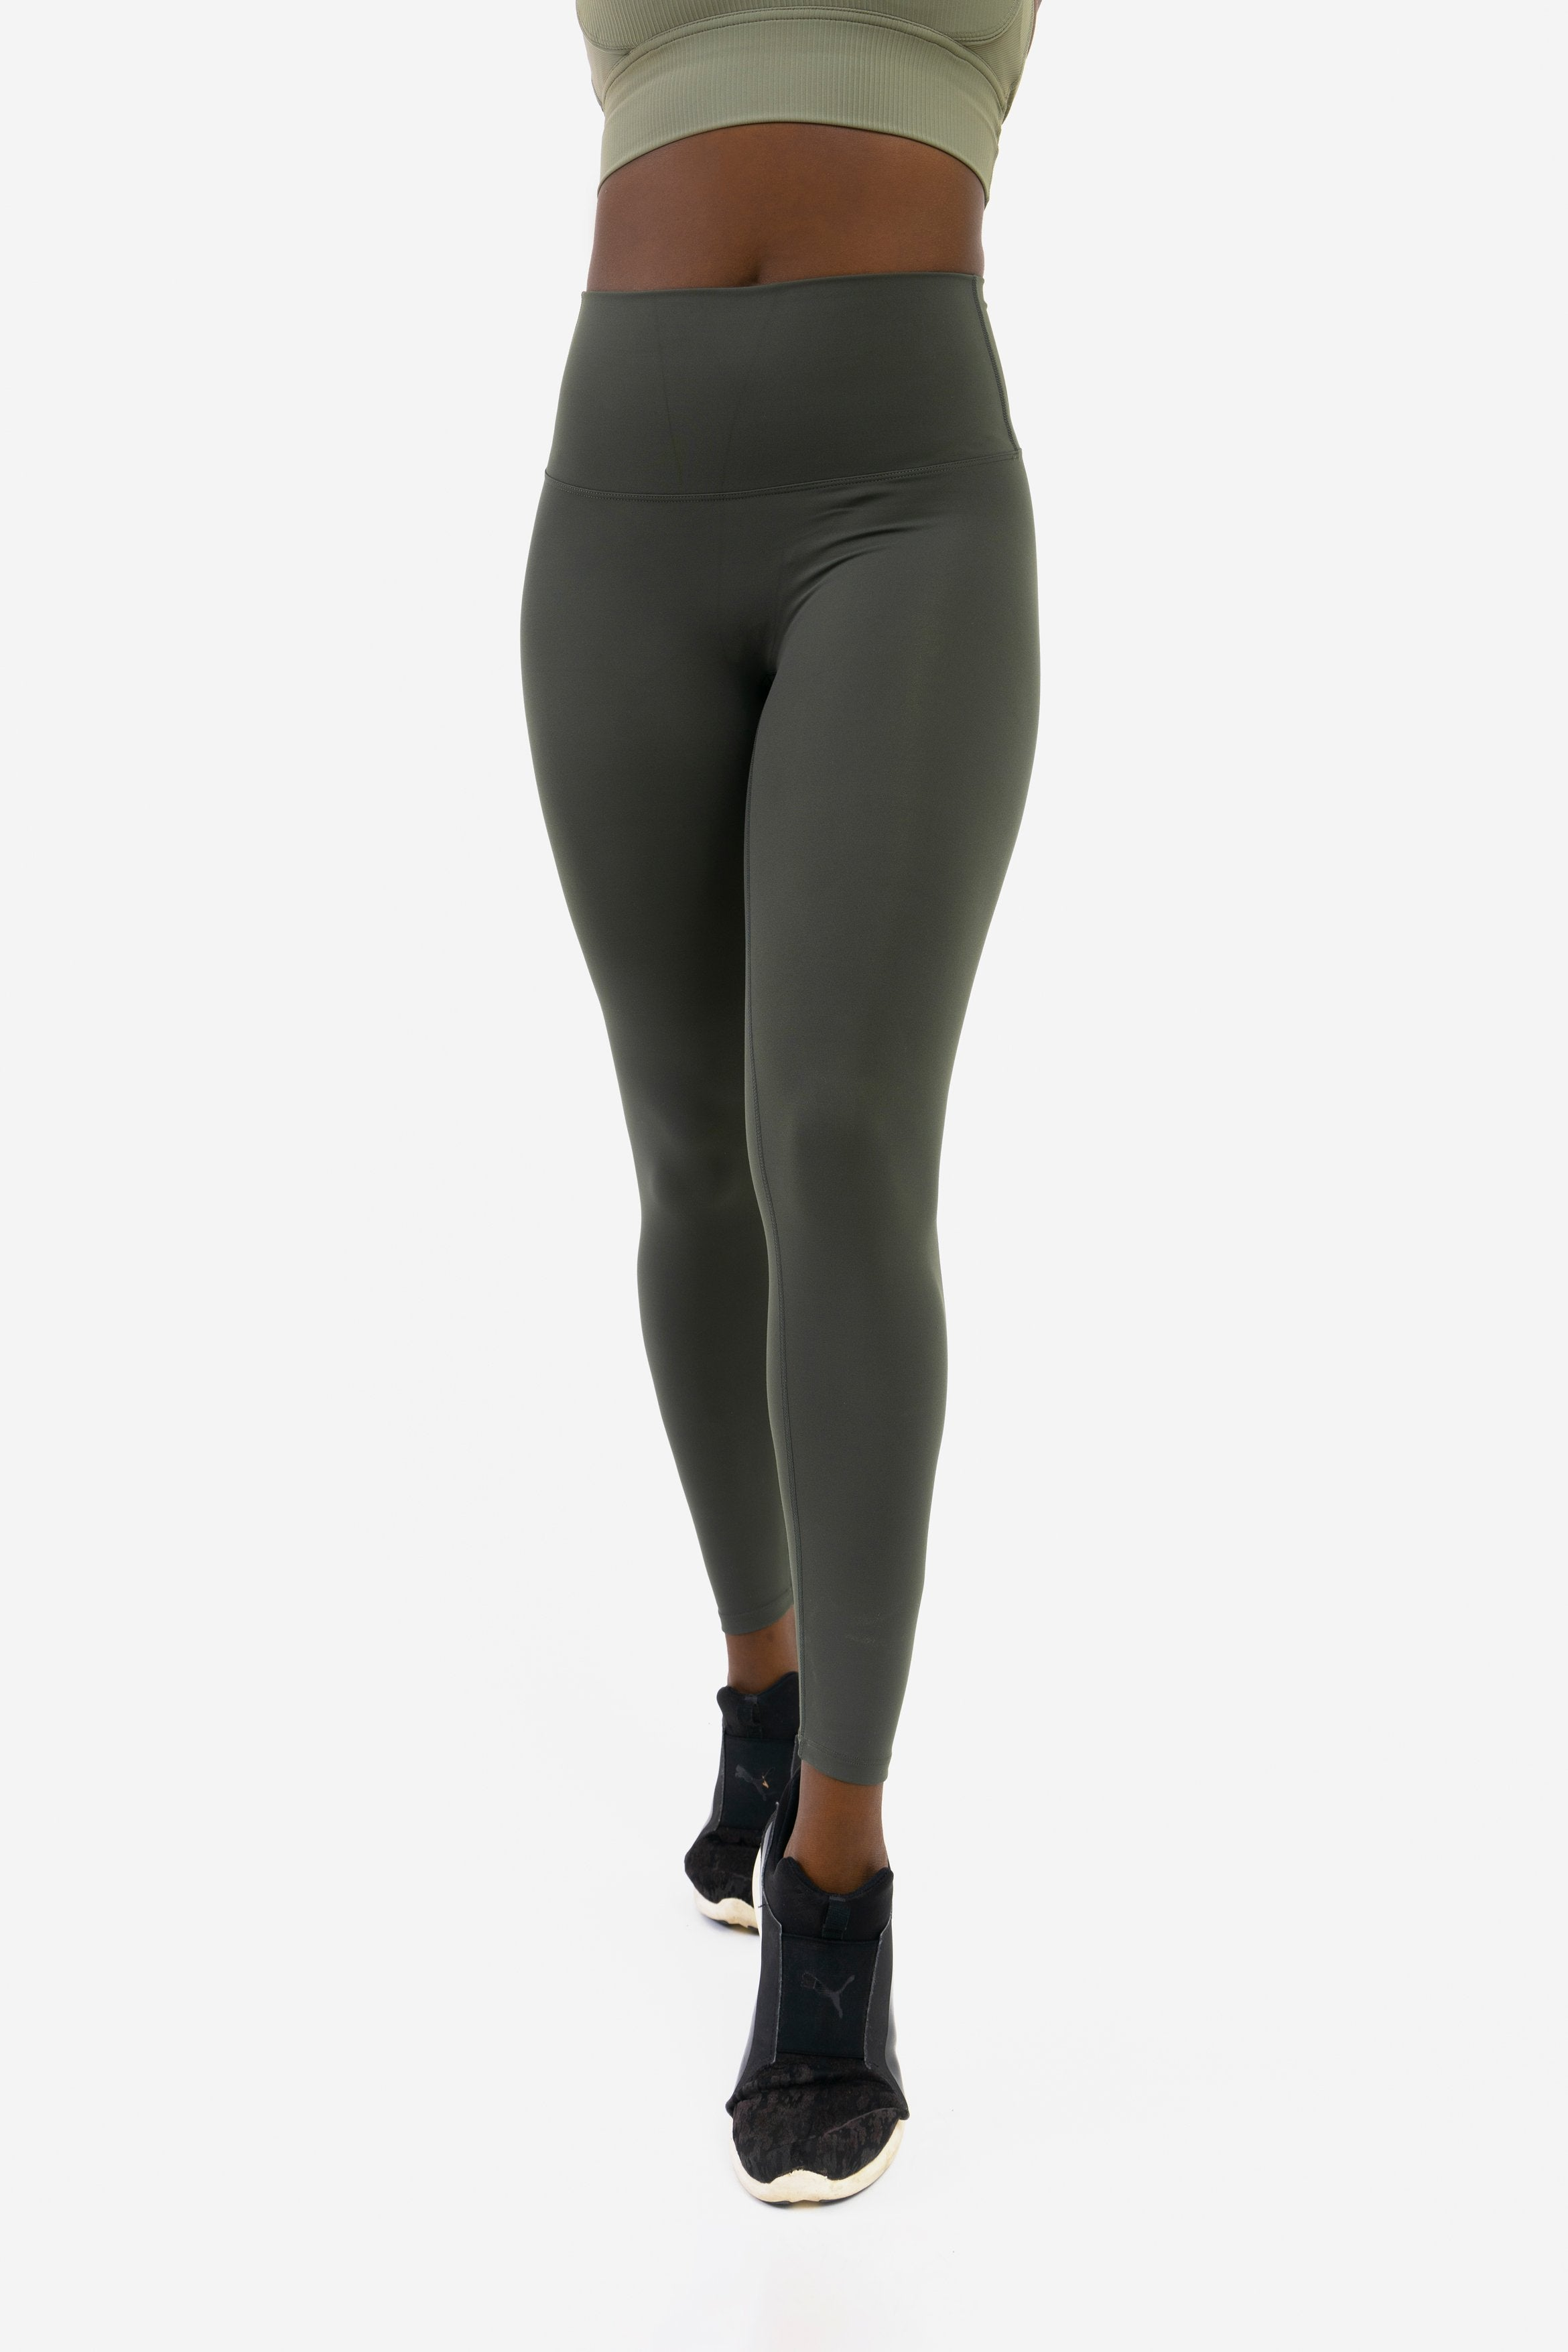 COMFY SOFT DARK GREEN - ZIBA Activewear